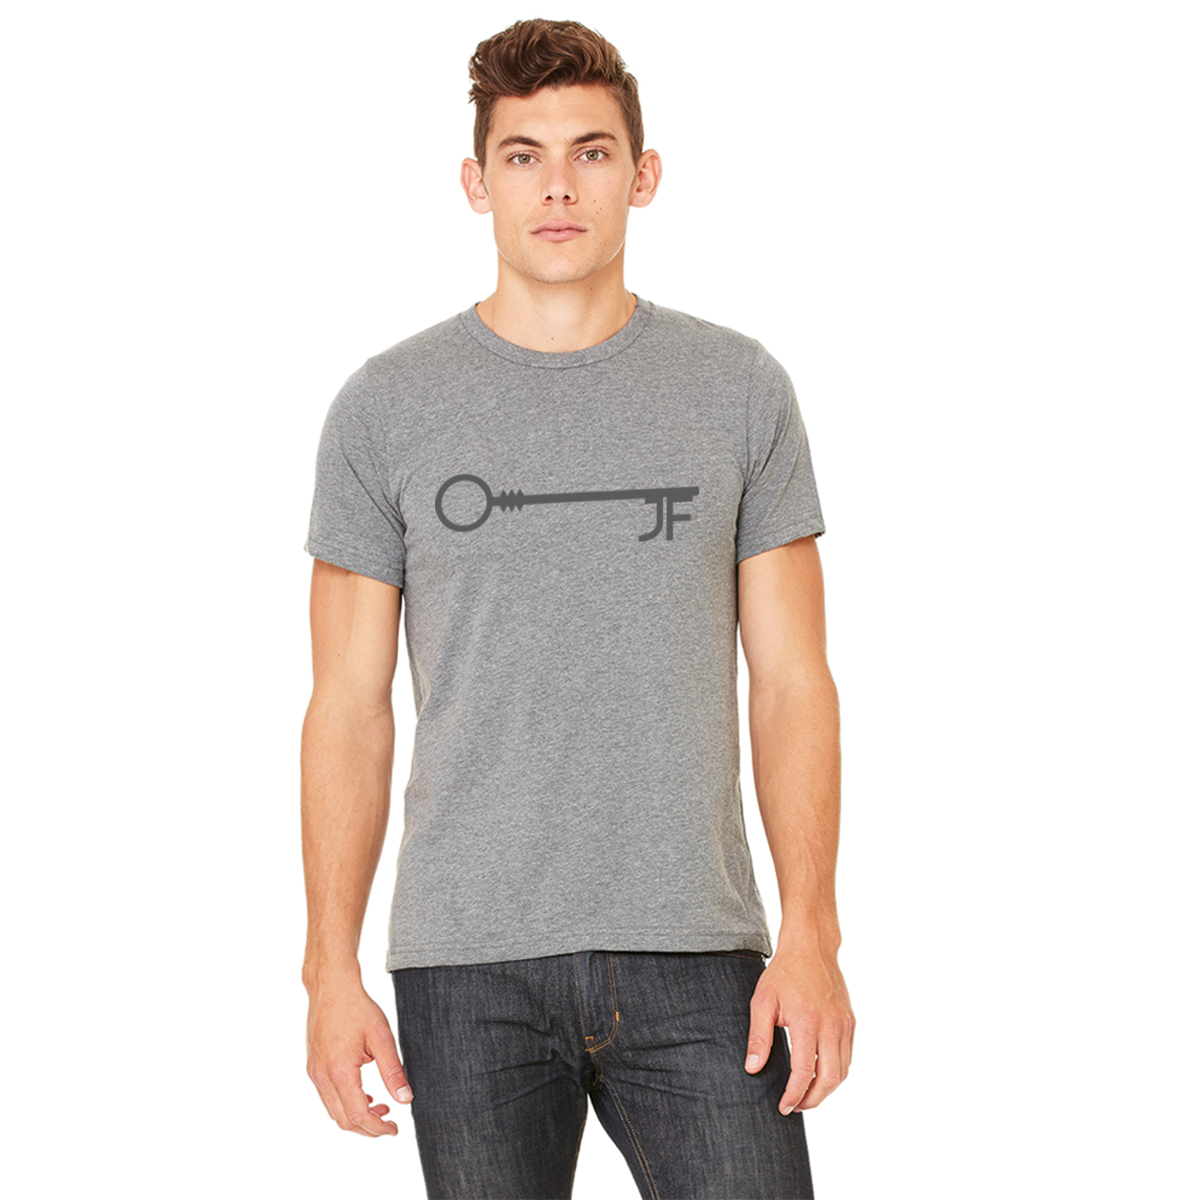 JF Key Heather Grey Men's Tee